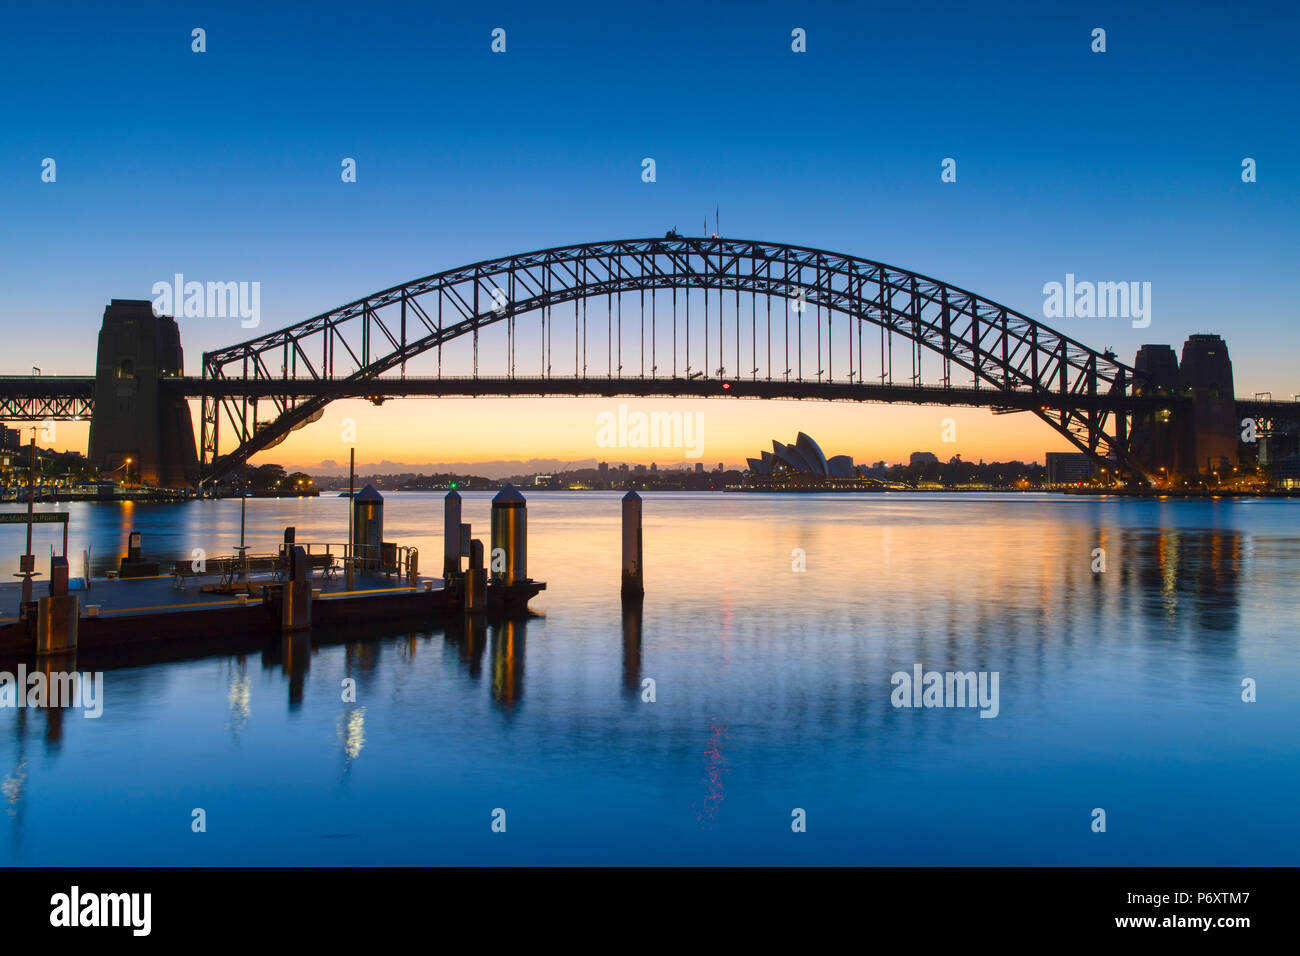 Il Sydney Harbour Bridge all'alba, Sydney, Nuovo Galles del Sud, Australia Foto Stock